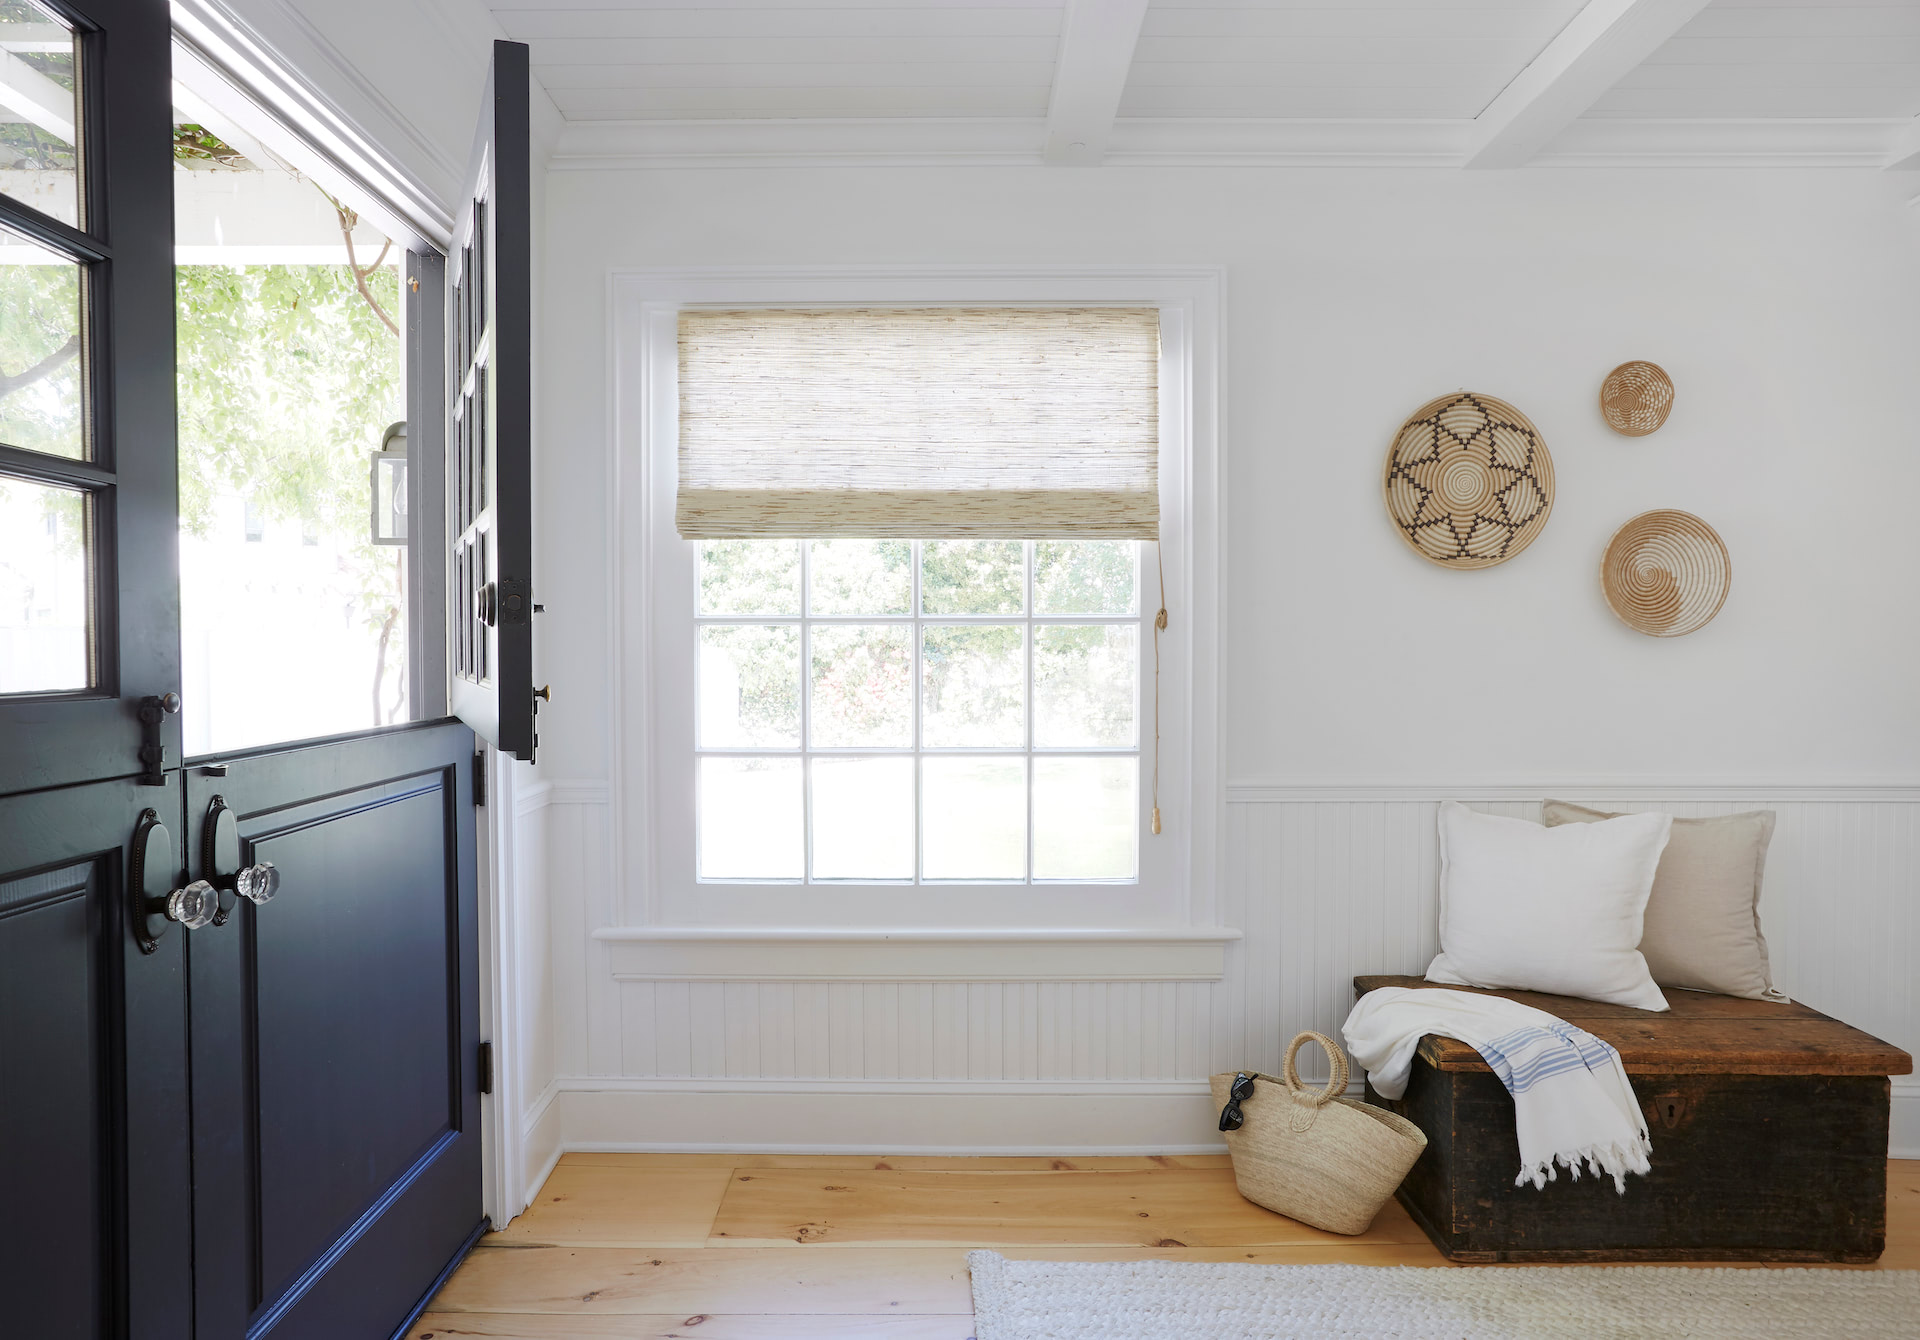 An entryway with a window covered by woven woods | Everhem